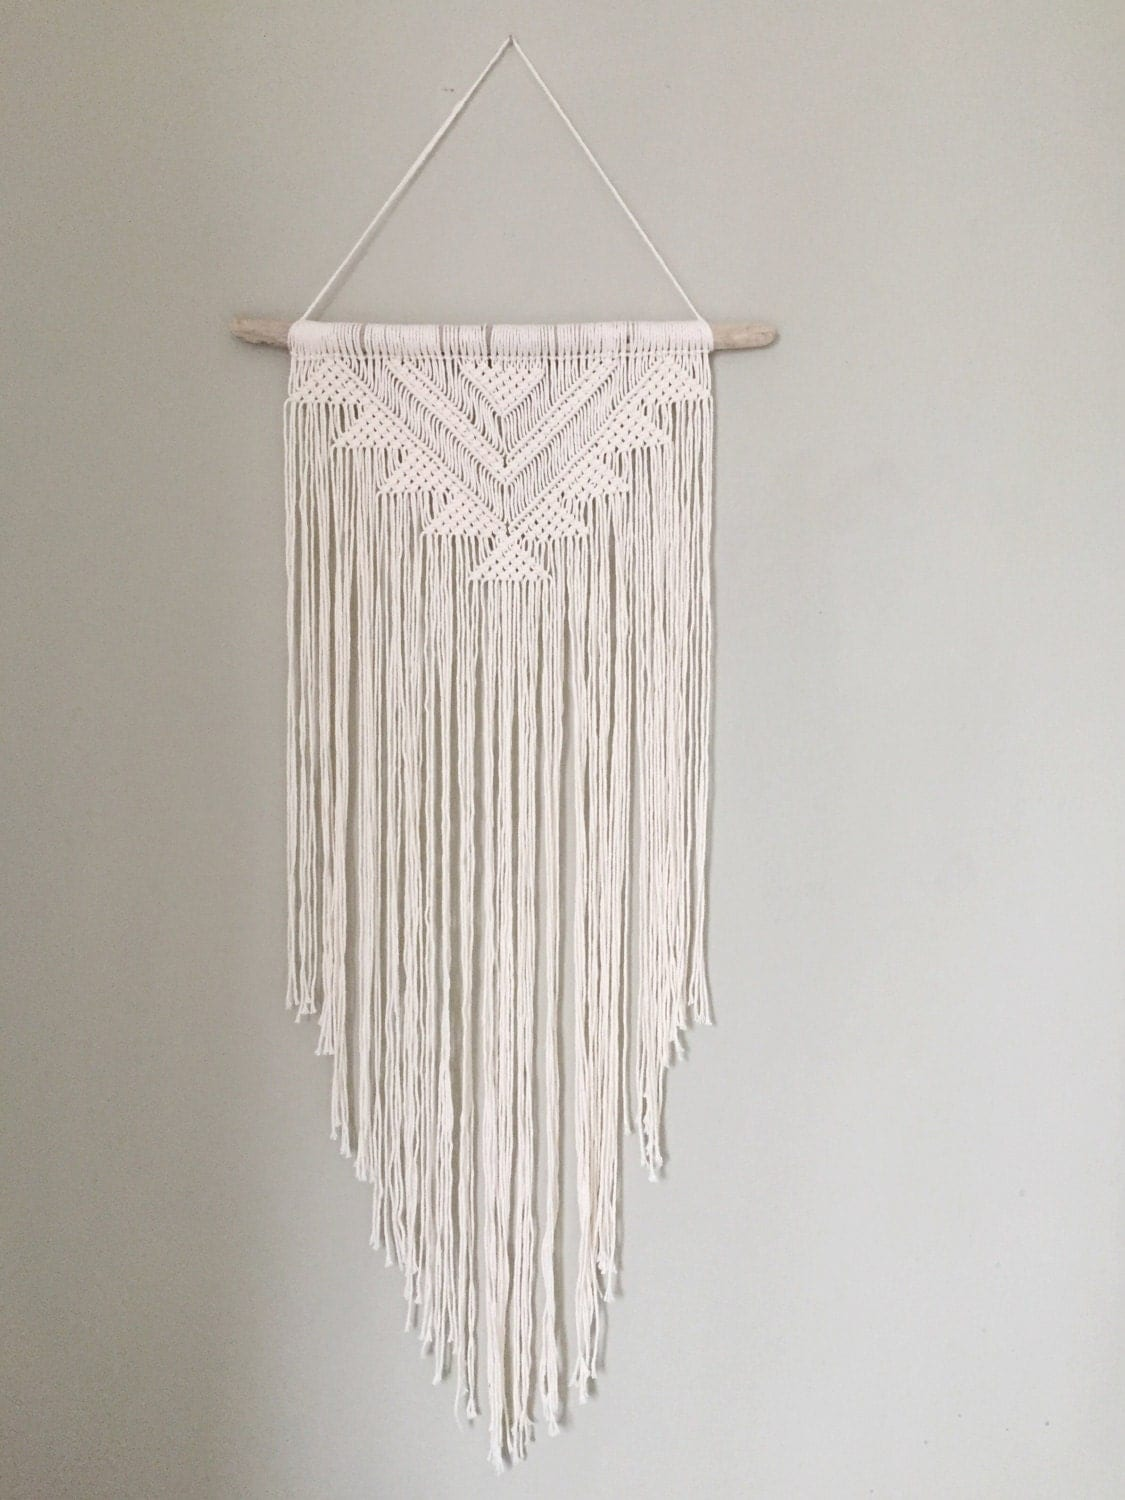 handmade macrame wall hanging wall decor boho chic wall art